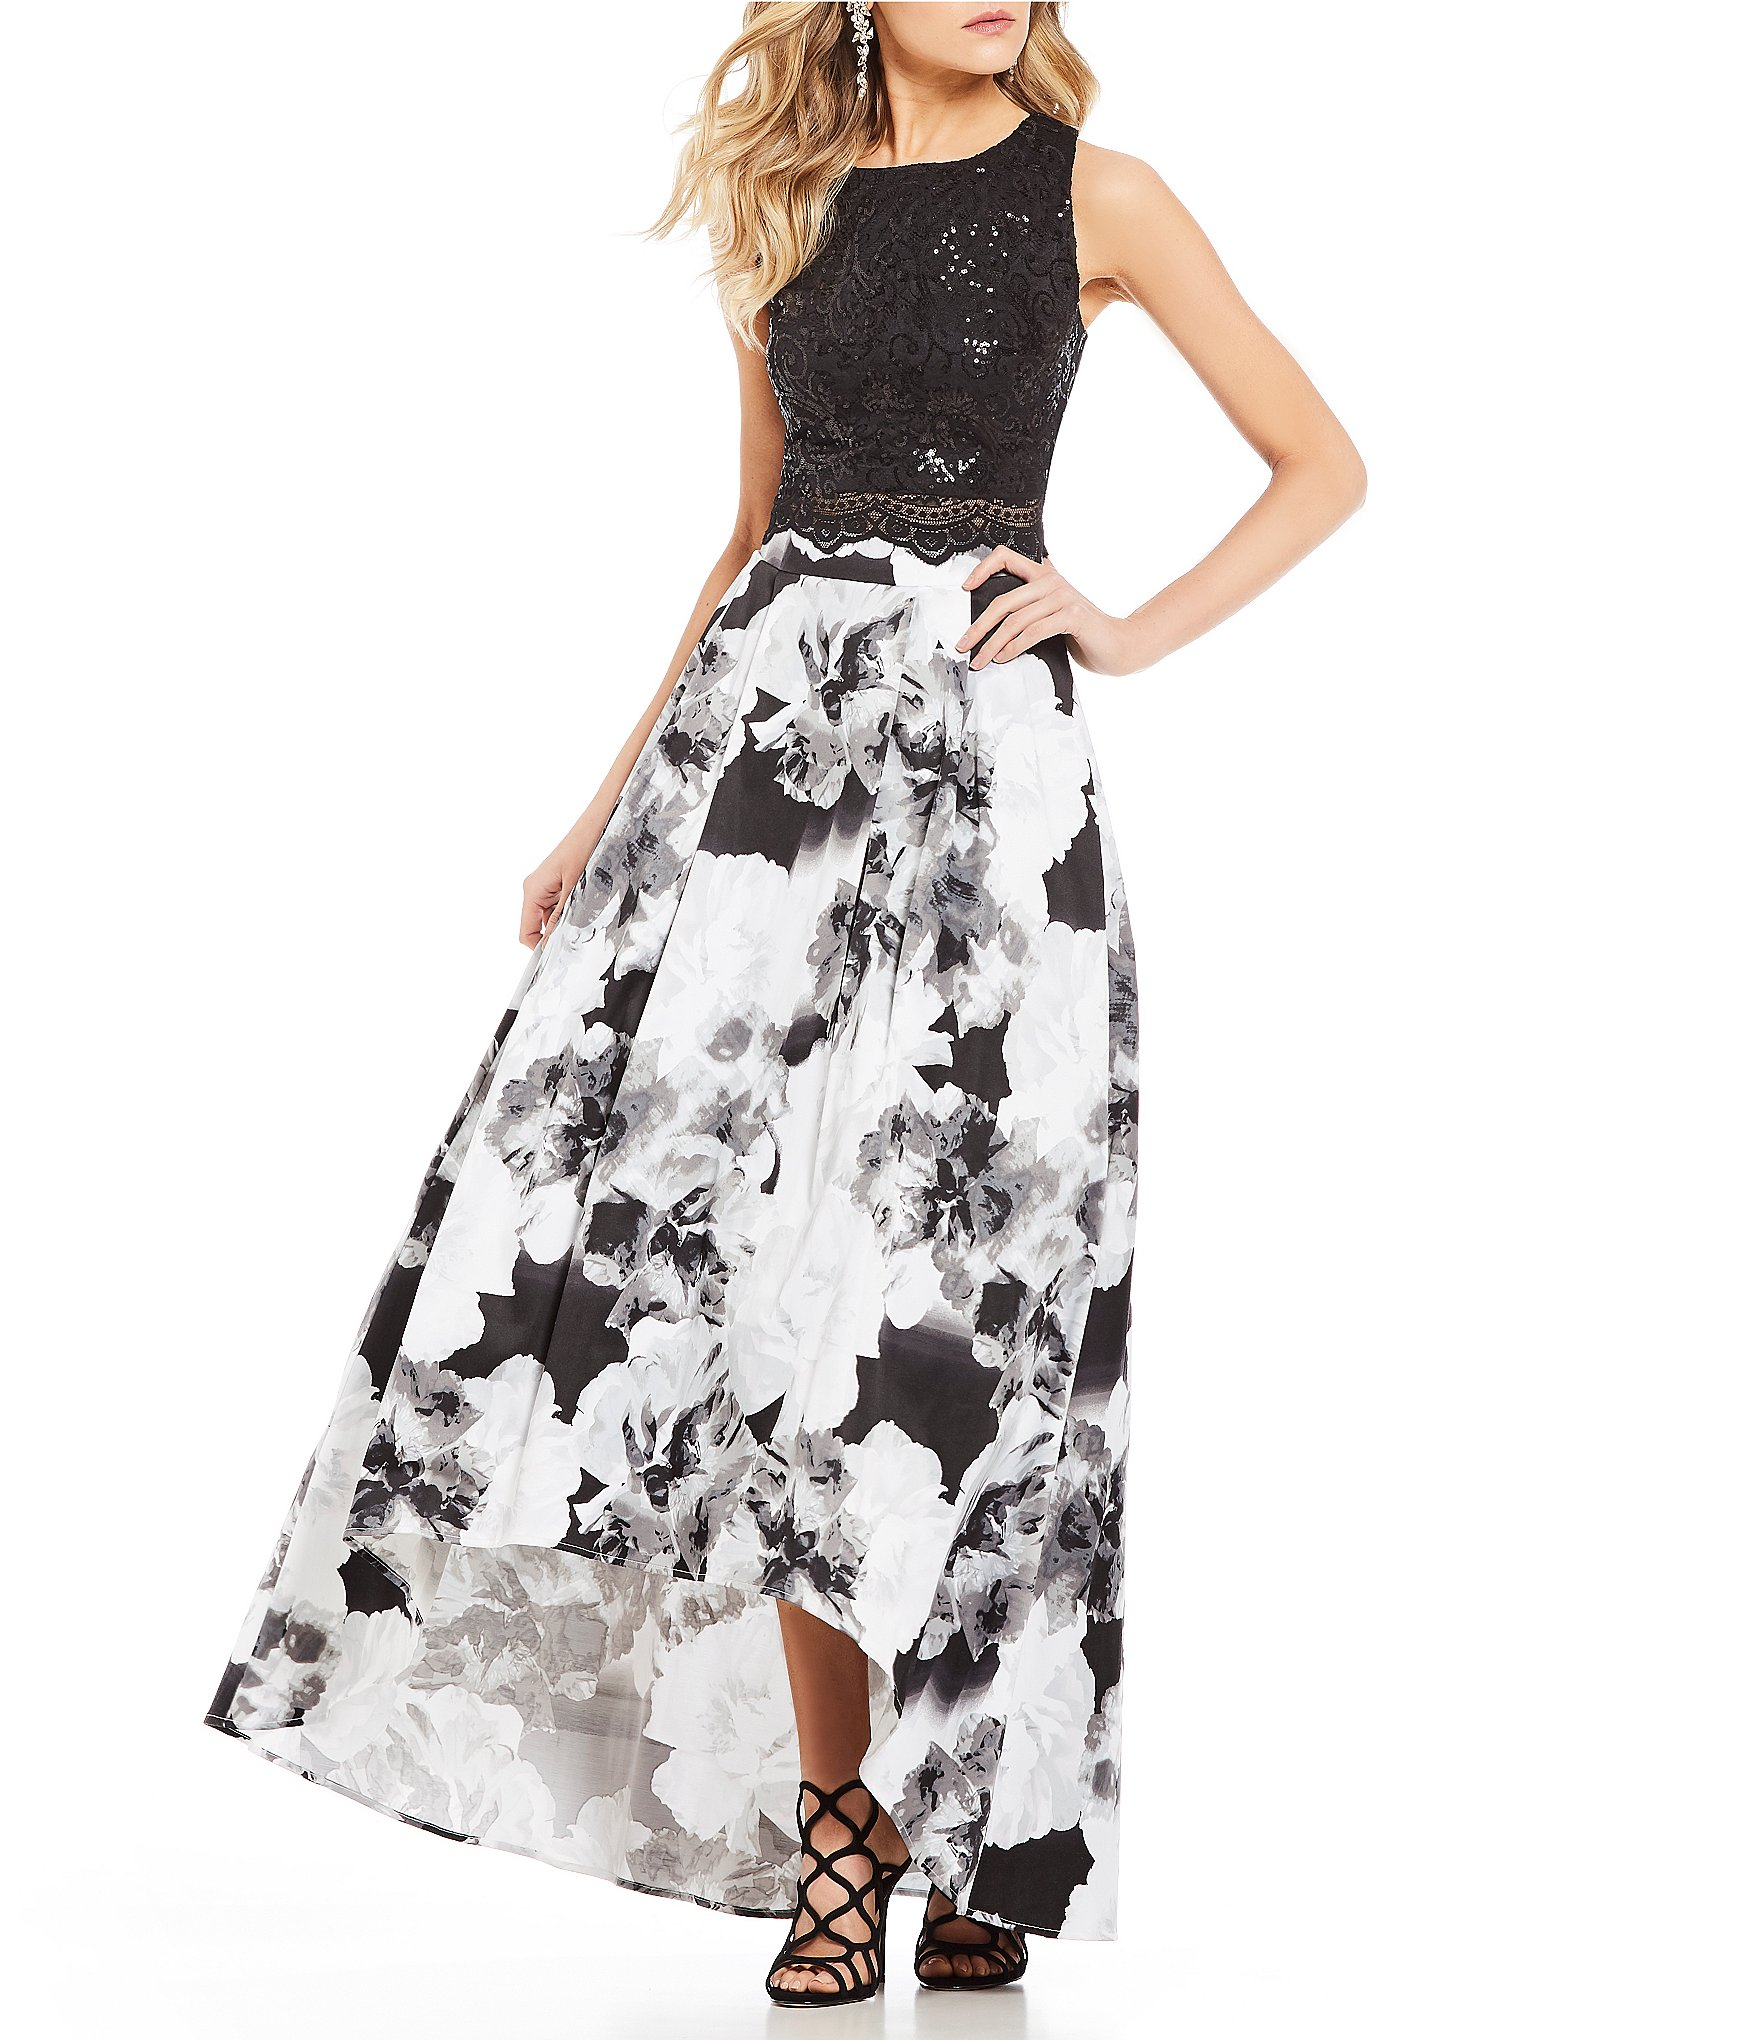 High Low Prom Dresses Dillard's,2 Peace Dillard's Prom Dresses,Clearance Prom Dresses Dillard's 70,Dillard's High Low Dresses for Prom,High Low Formal Dresses at Dillard's,Hi-Low Bridesmaid Dresses Dillard's,dillards prom dresses clearance,